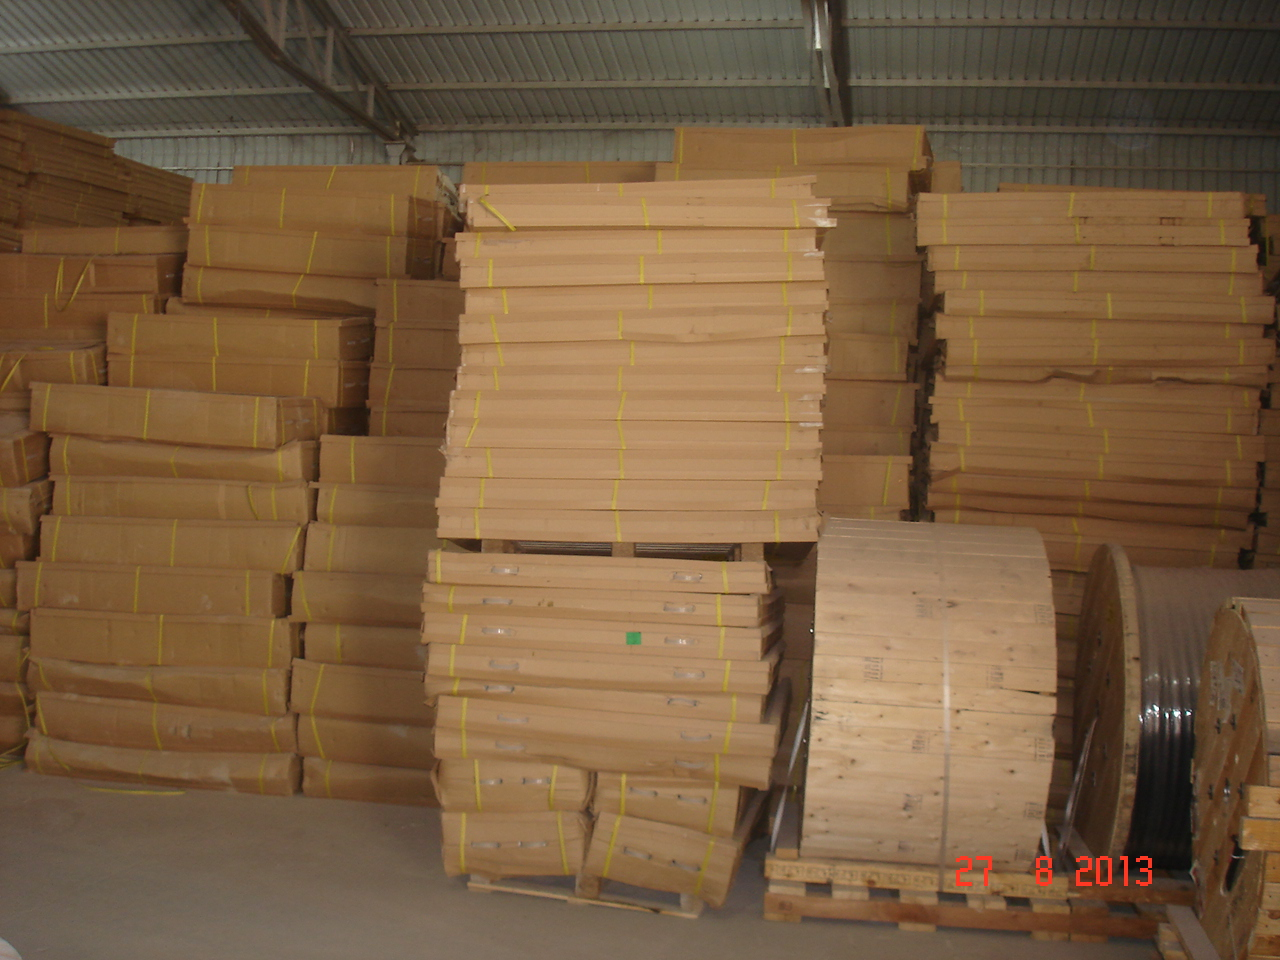 Olymic Warehouse Image 28